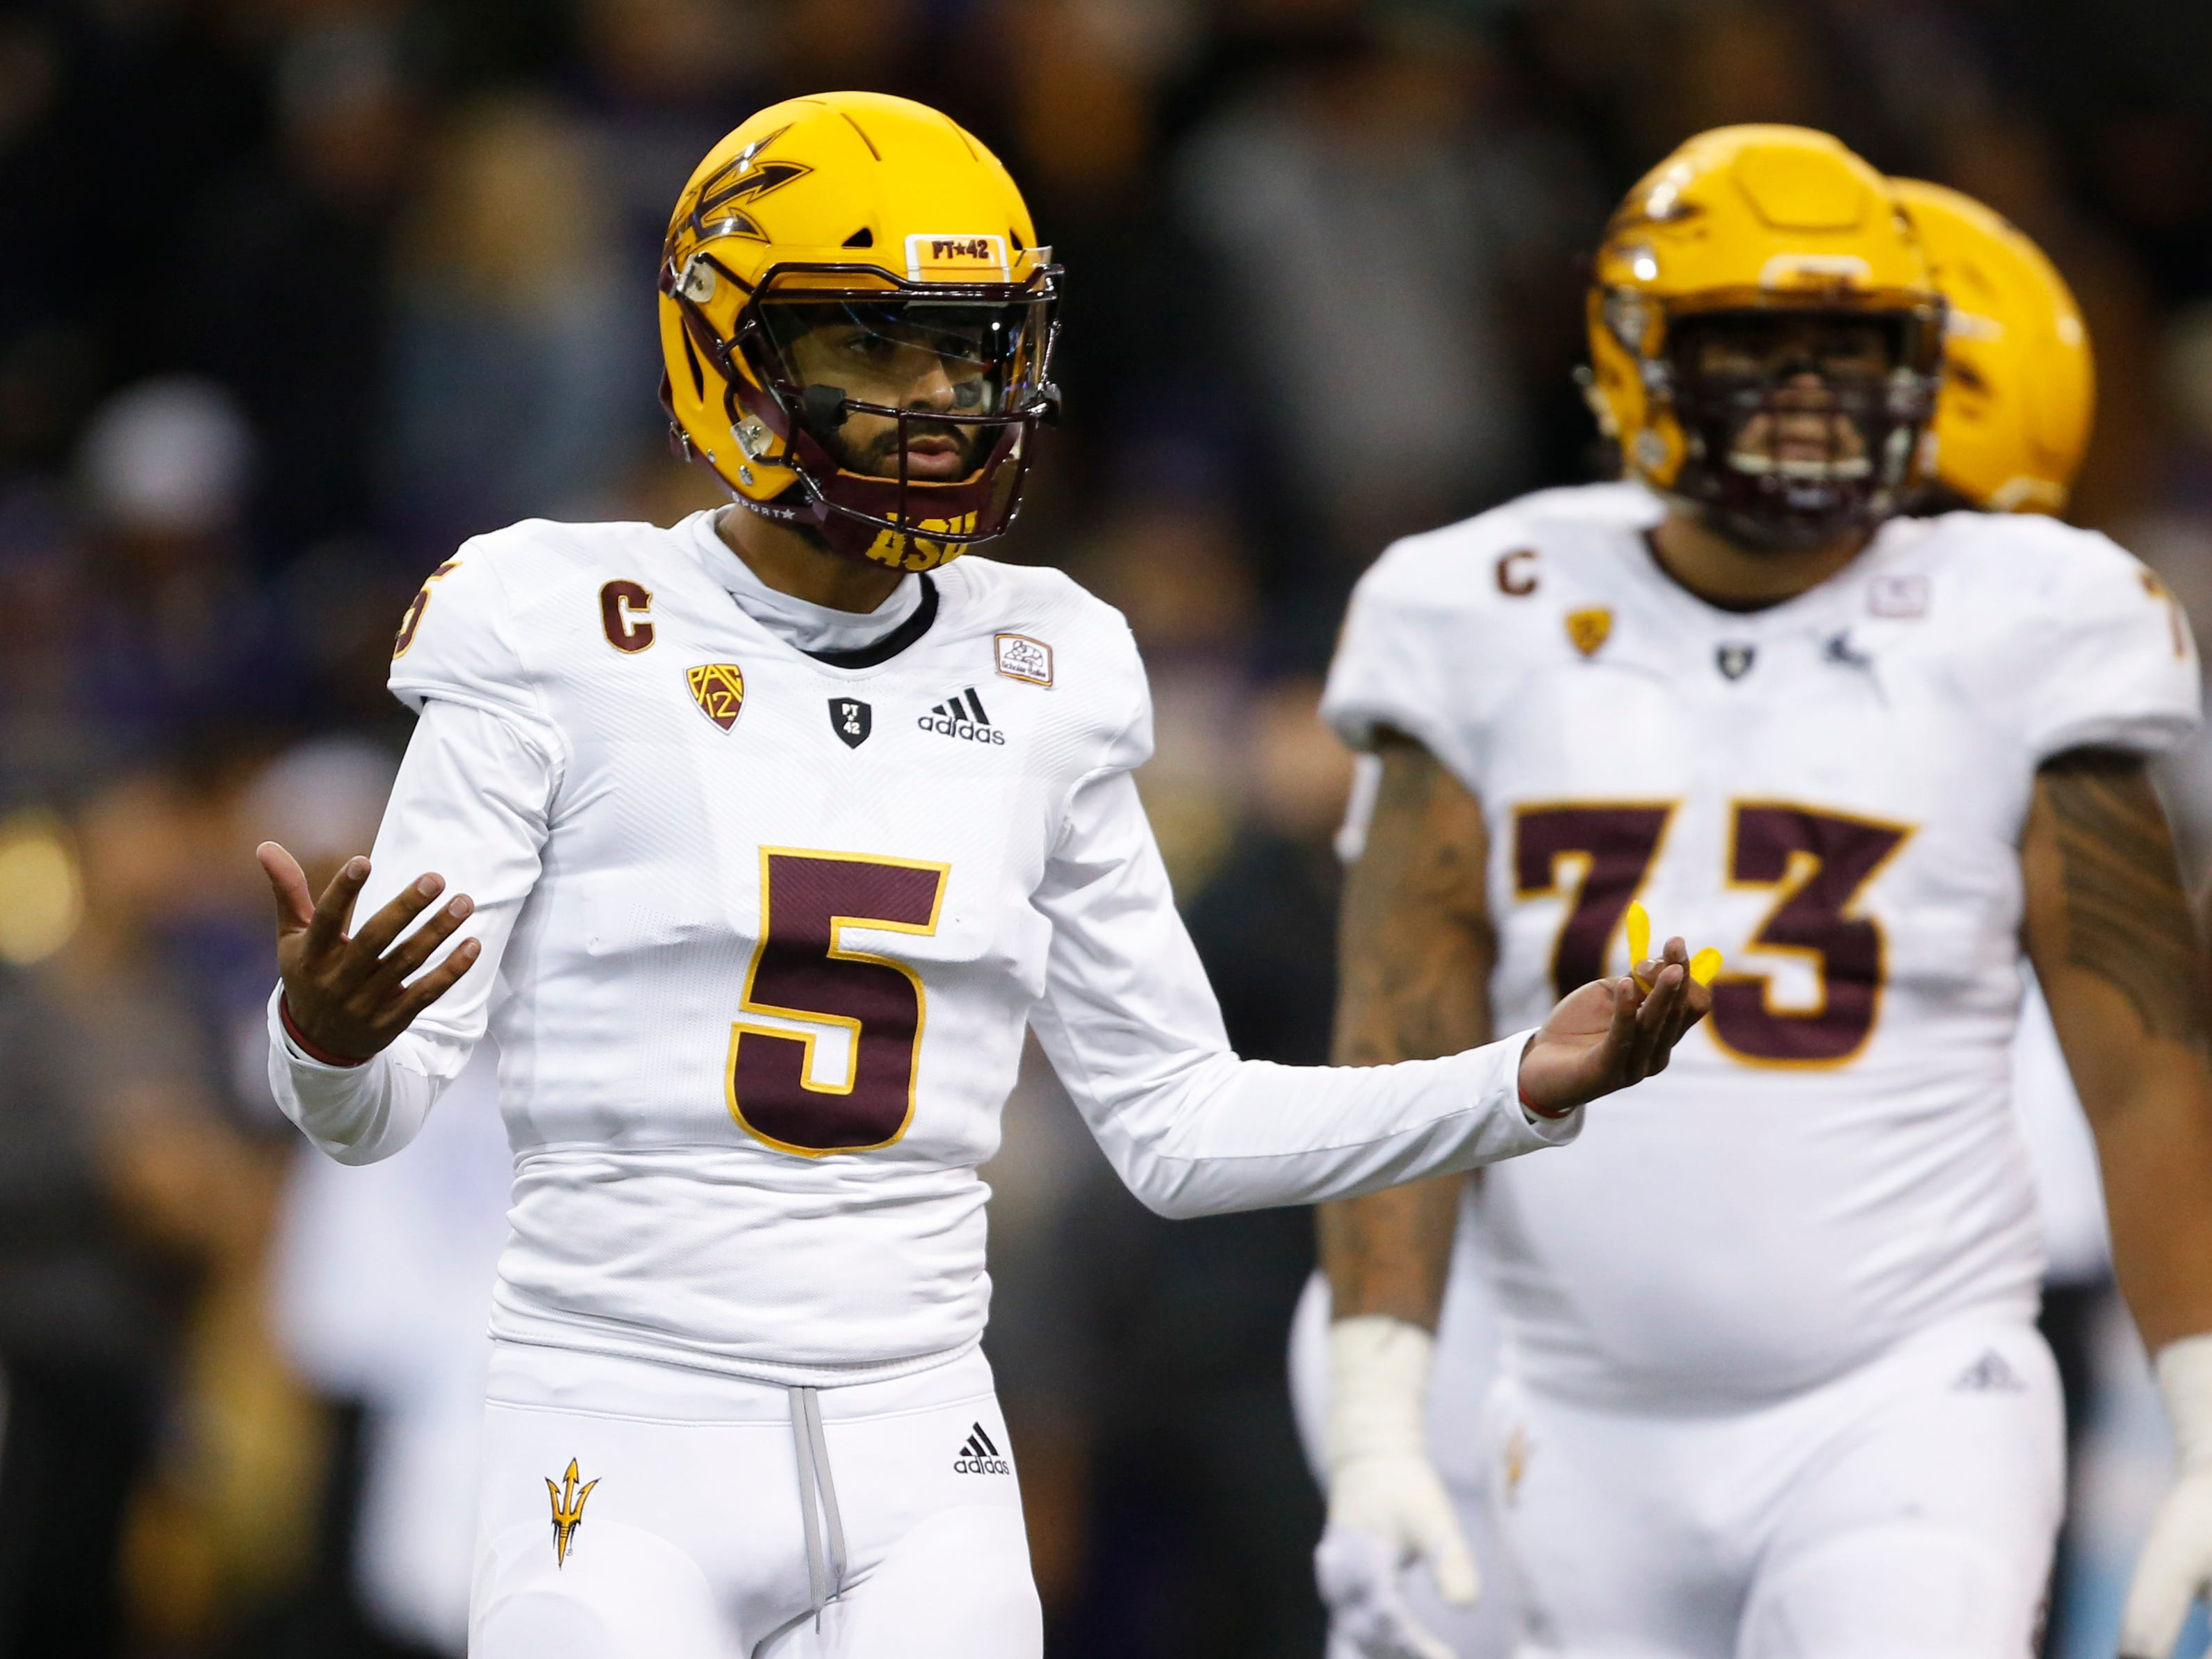 Sep 22, 2018; Seattle, WA, USA; Arizona State Sun Devils quarterback Manny Wilkins (5) gestures toward the sidelines during the second quarter against the Washington Huskies at Husky Stadium.